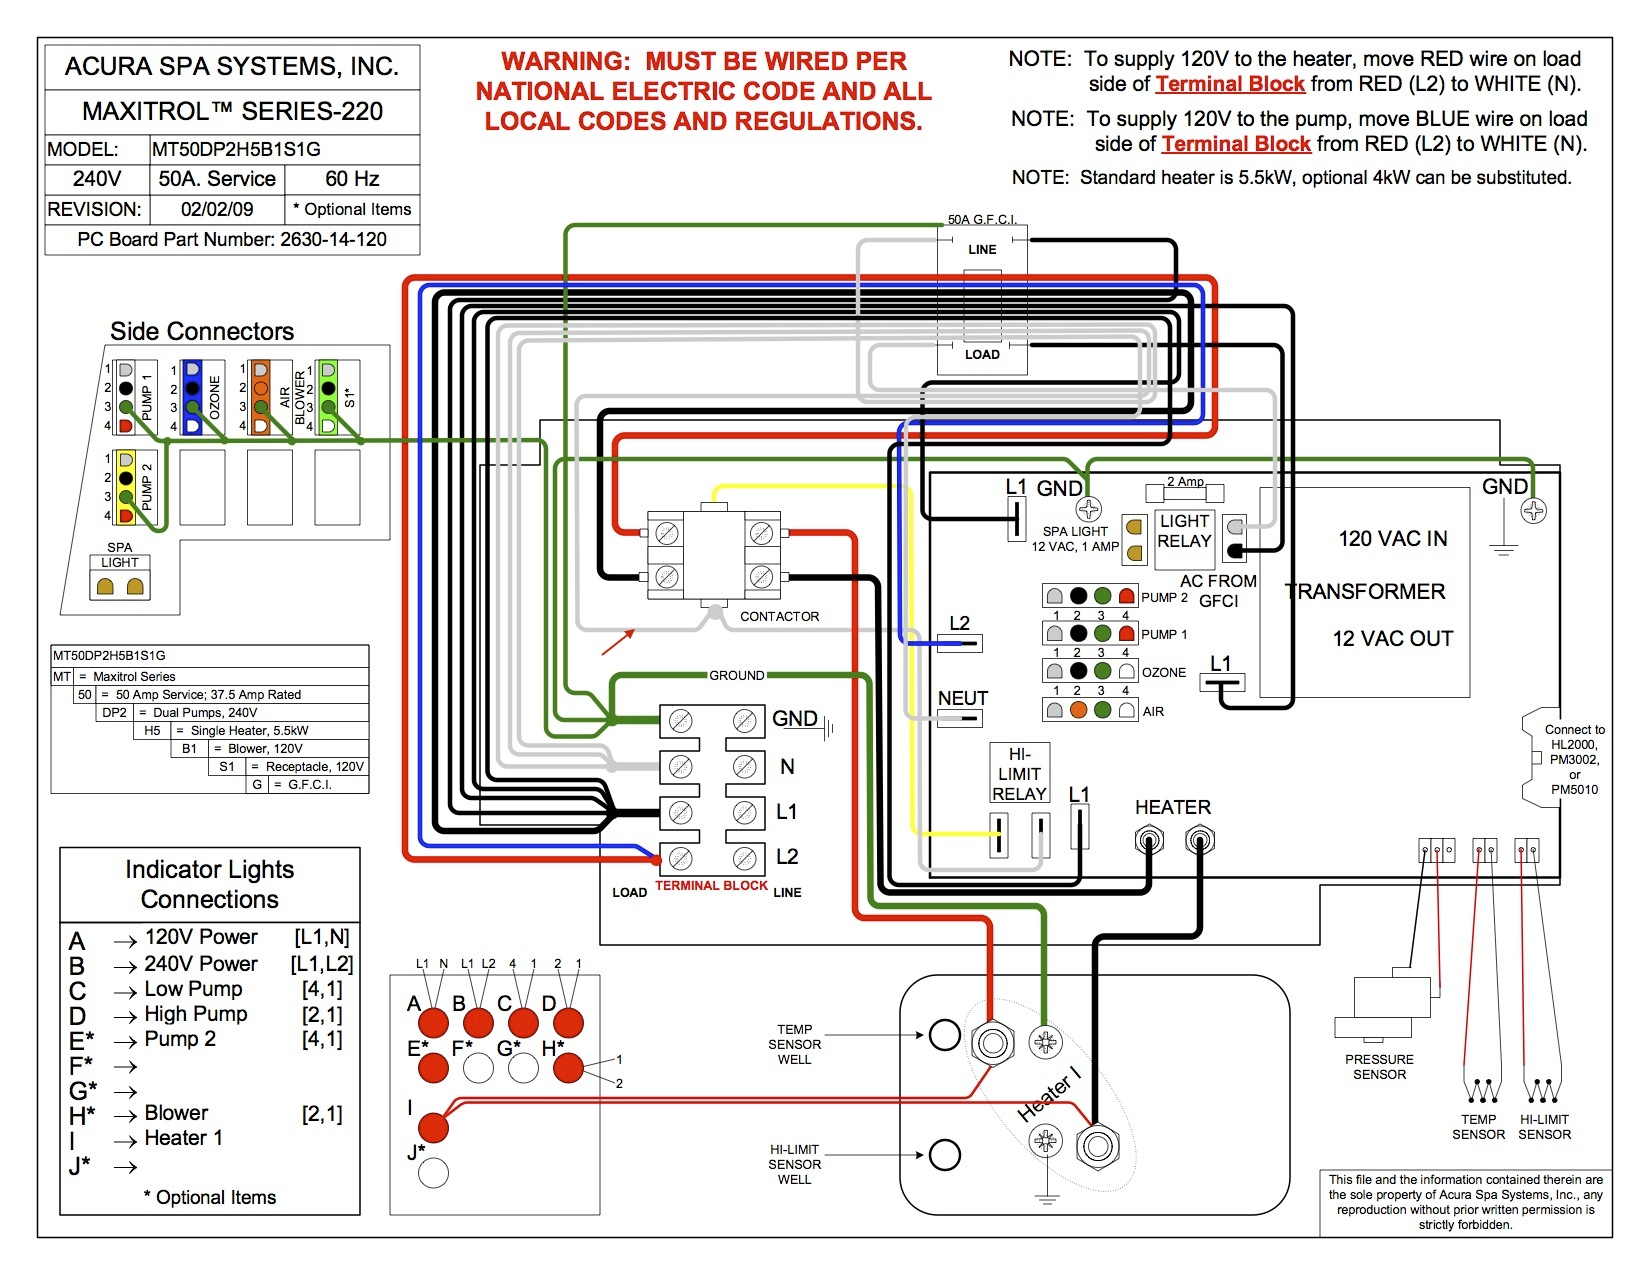 hydro hot wiring diagram all wiring diagram 3Way Wiring Diagram